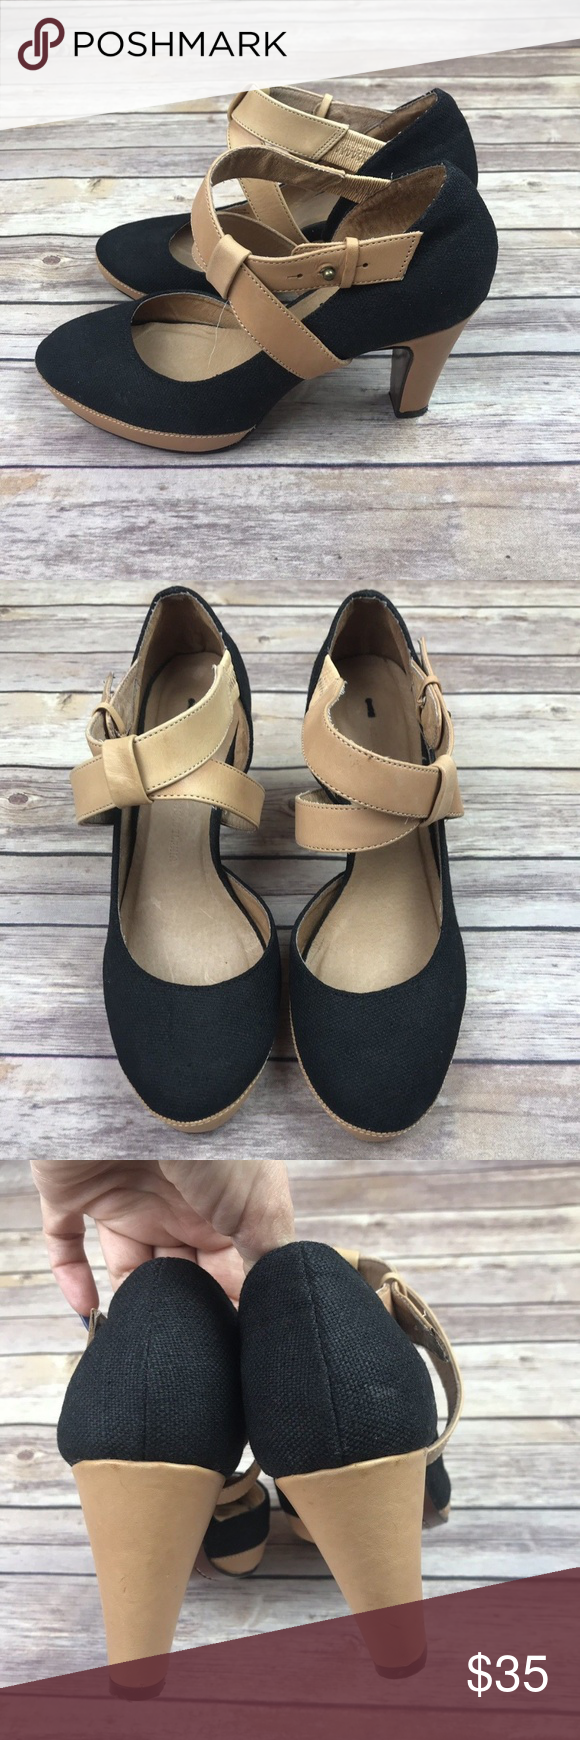 879899b4a3a Schuler  amp  Sons Anthropologie Mary Jane Heels Women s Schuler  amp  Sons  Philadelphia for Anthropologie